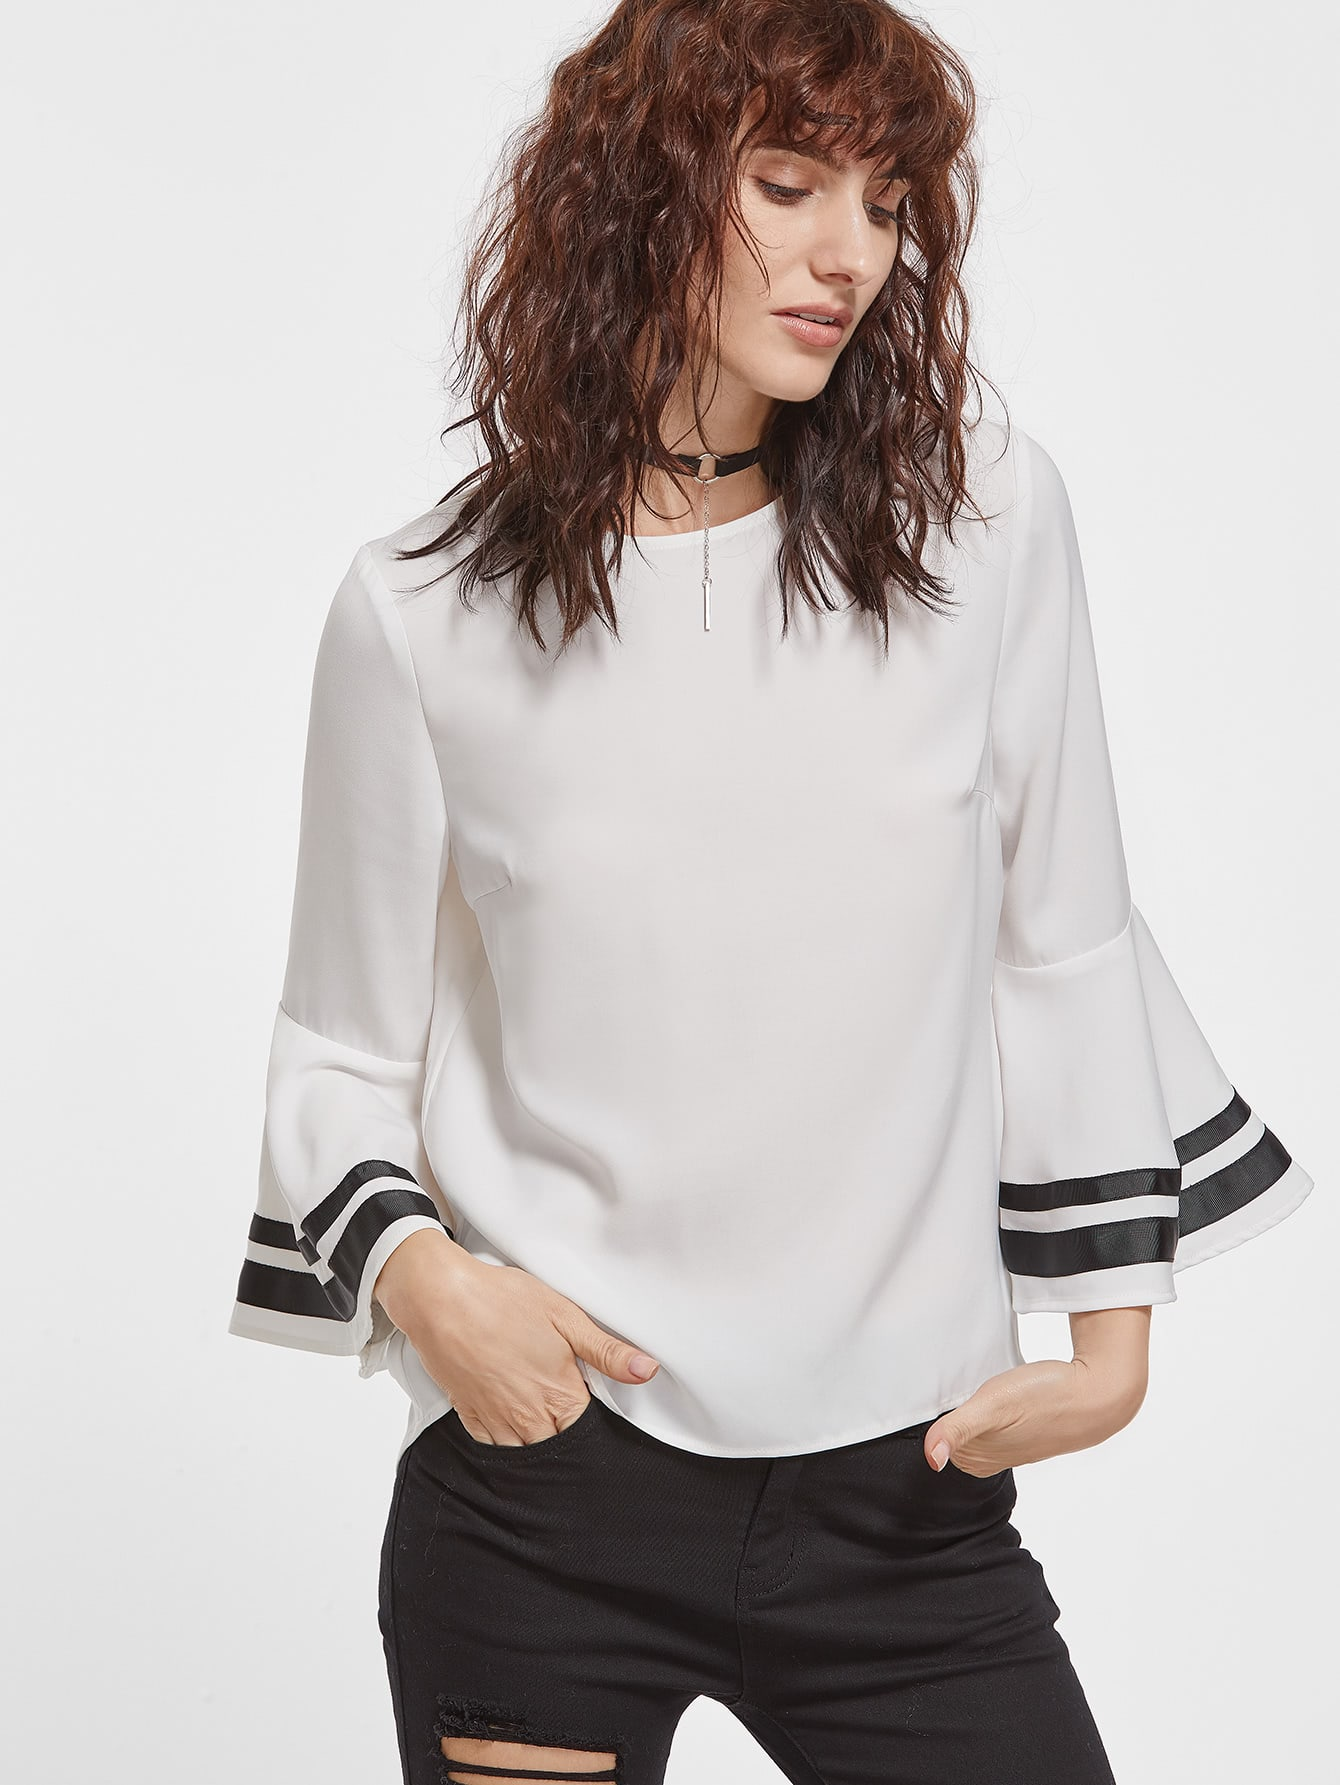 White Striped Bell Sleeve Keyhole Back BlouseWhite Striped Bell Sleeve Keyhole Back Blouse<br><br>color: White<br>size: L,M,S,XS